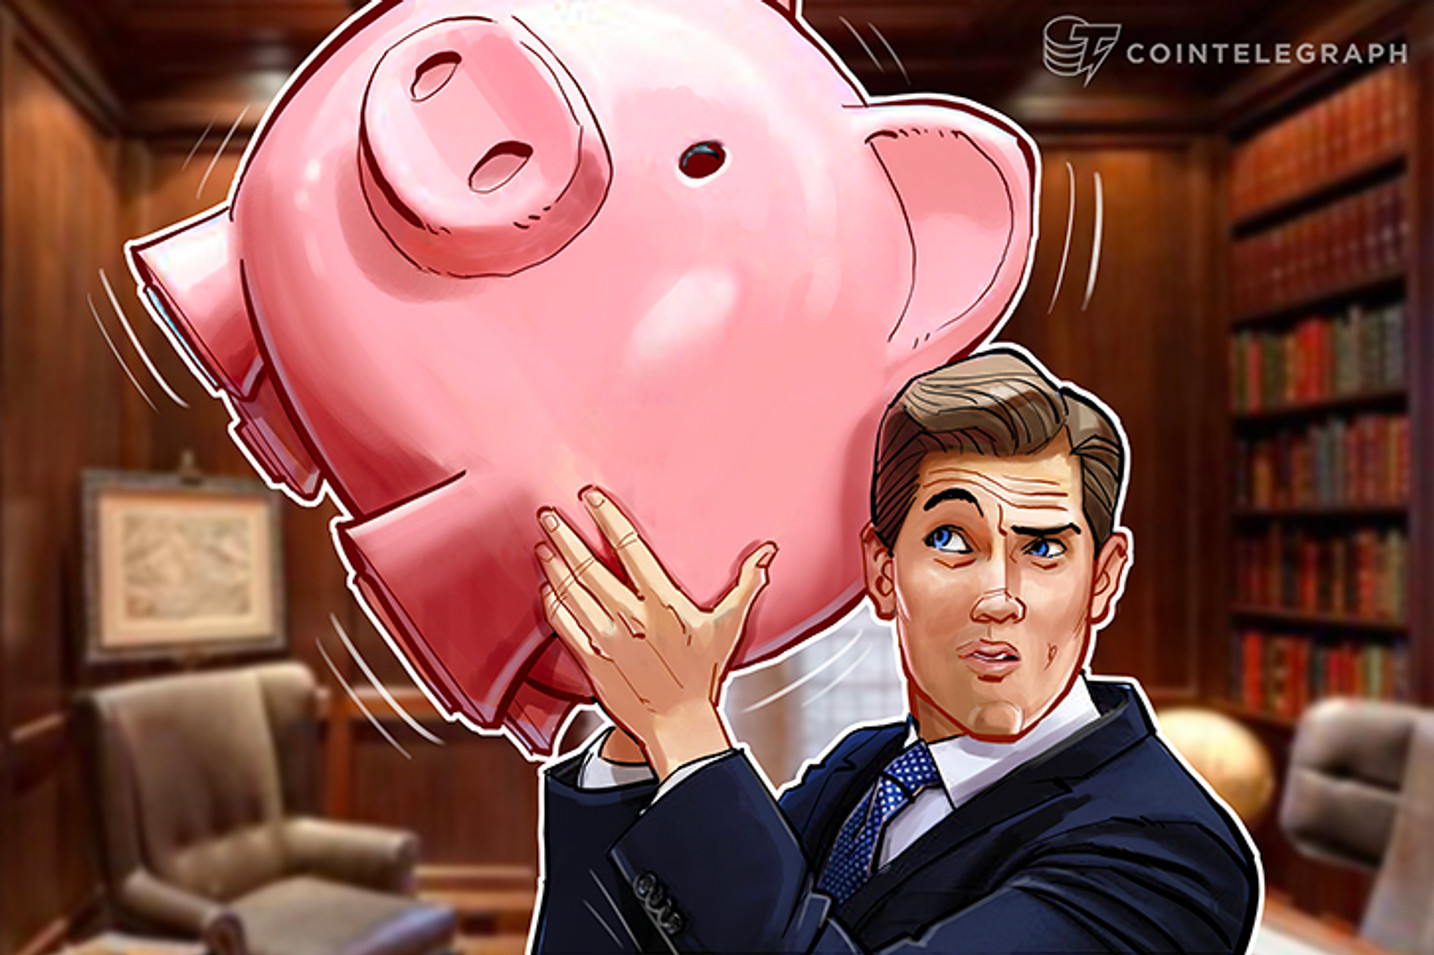 US: Tax Filing Service Says Only 0.04% Of Customers Reported Crypto To IRS For 2017